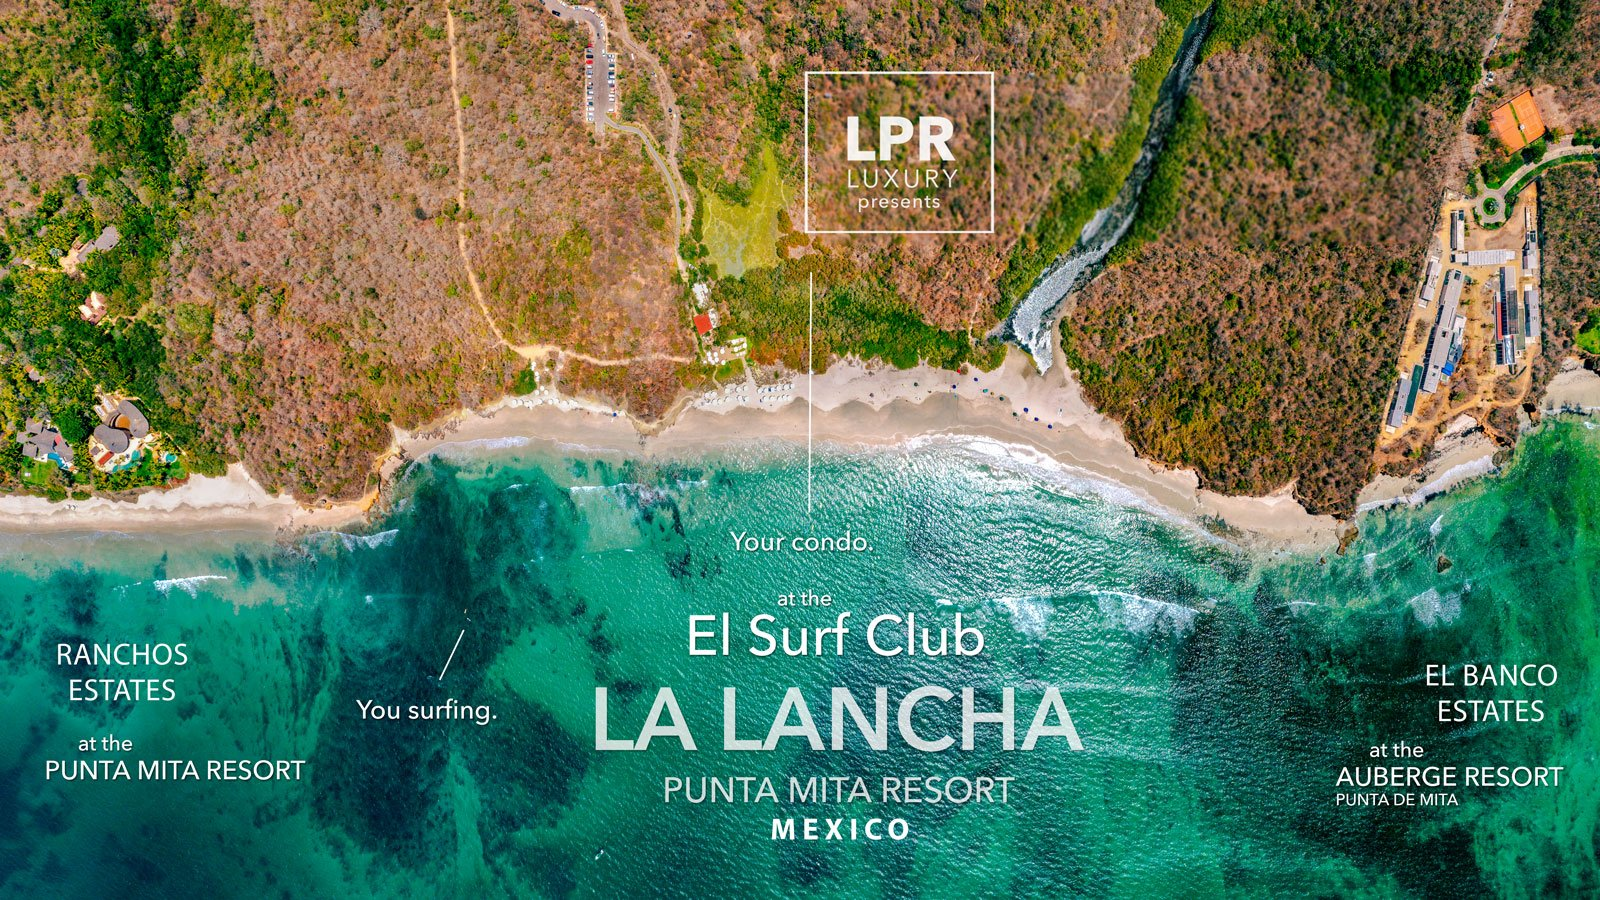 La Lancha - Punta Mita resort beachfront condos. Luxury real estate for sale at the Punta Mita Resort, Riviera Nayarit, Mexico